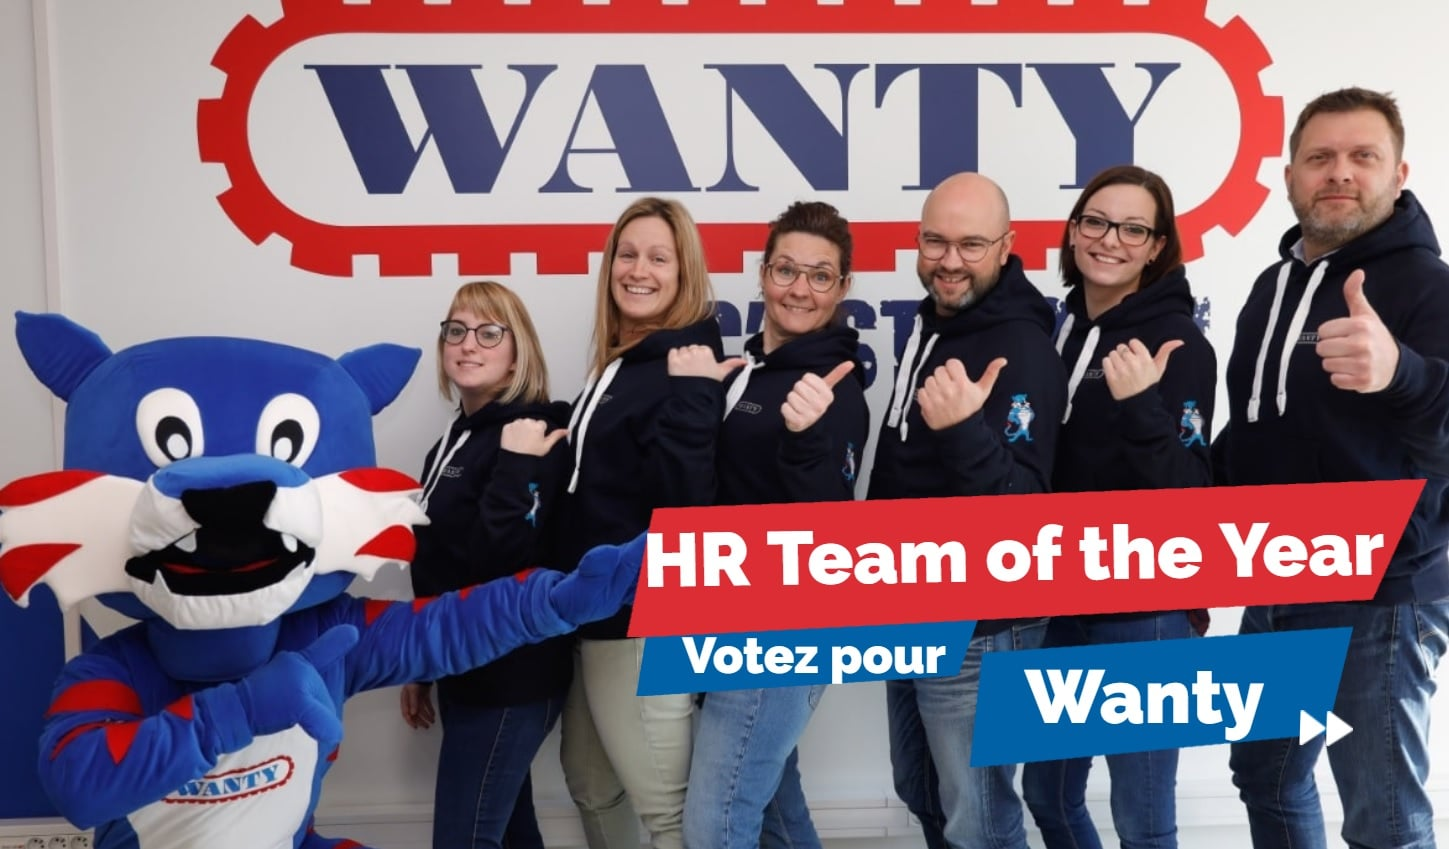 Wanty, finaliste  du HR MANAGER OF THE YEAR© / HR TEAM OF THE YEAR© AWARD 2019